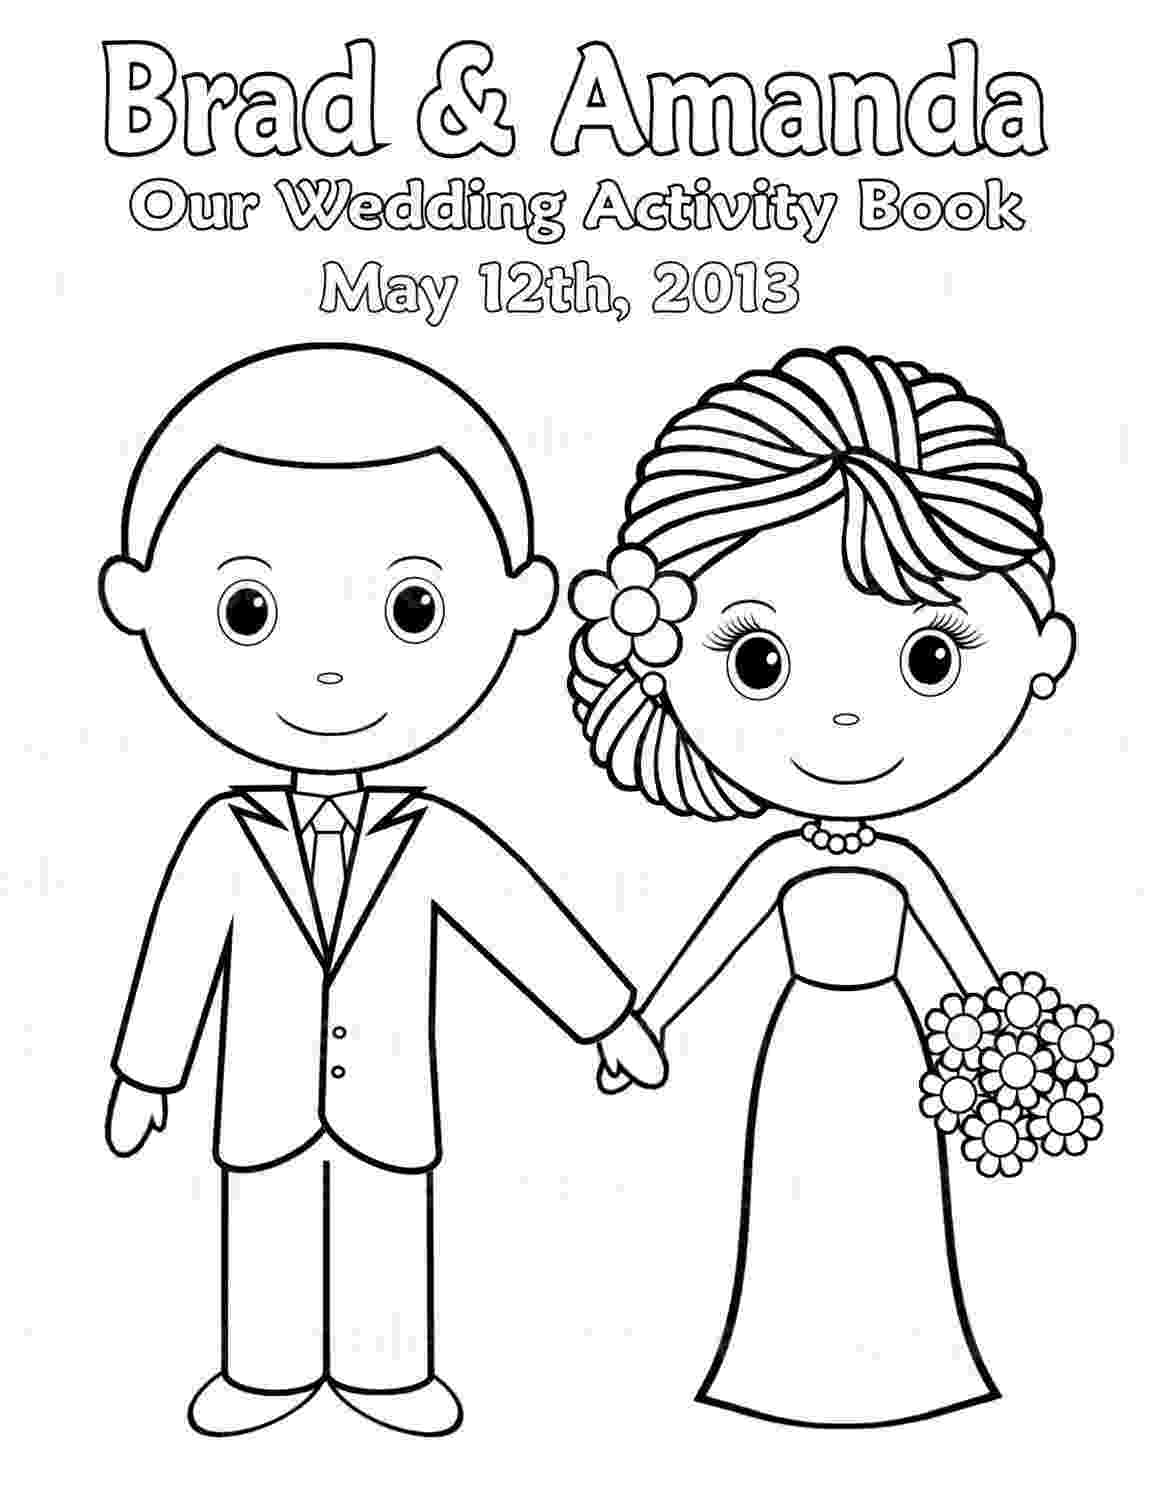 color day ideas printable personalized wedding coloring activity book day ideas color